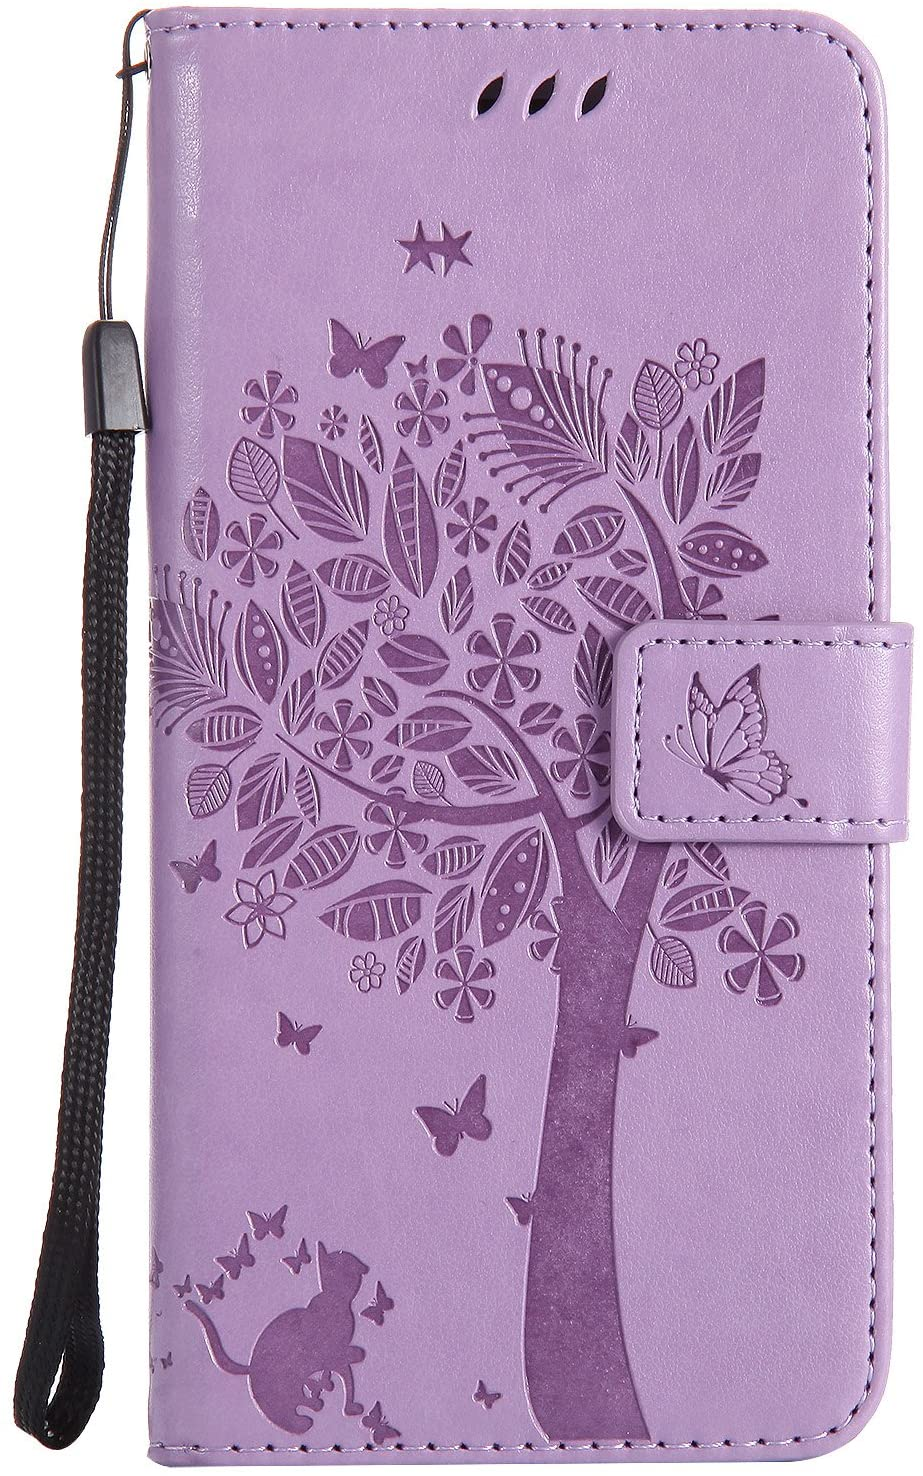 iPhone 8 Plus Case,iPhone 7 Plus Case,Wallet Case,PU Leather Case Floral Tree Cat Embossed Purse Kickstand Flip Cover Card Holders Hand Strap for iPhone 7 Plus/iPhone 8 Plus [5.5 Inch] Light Purple